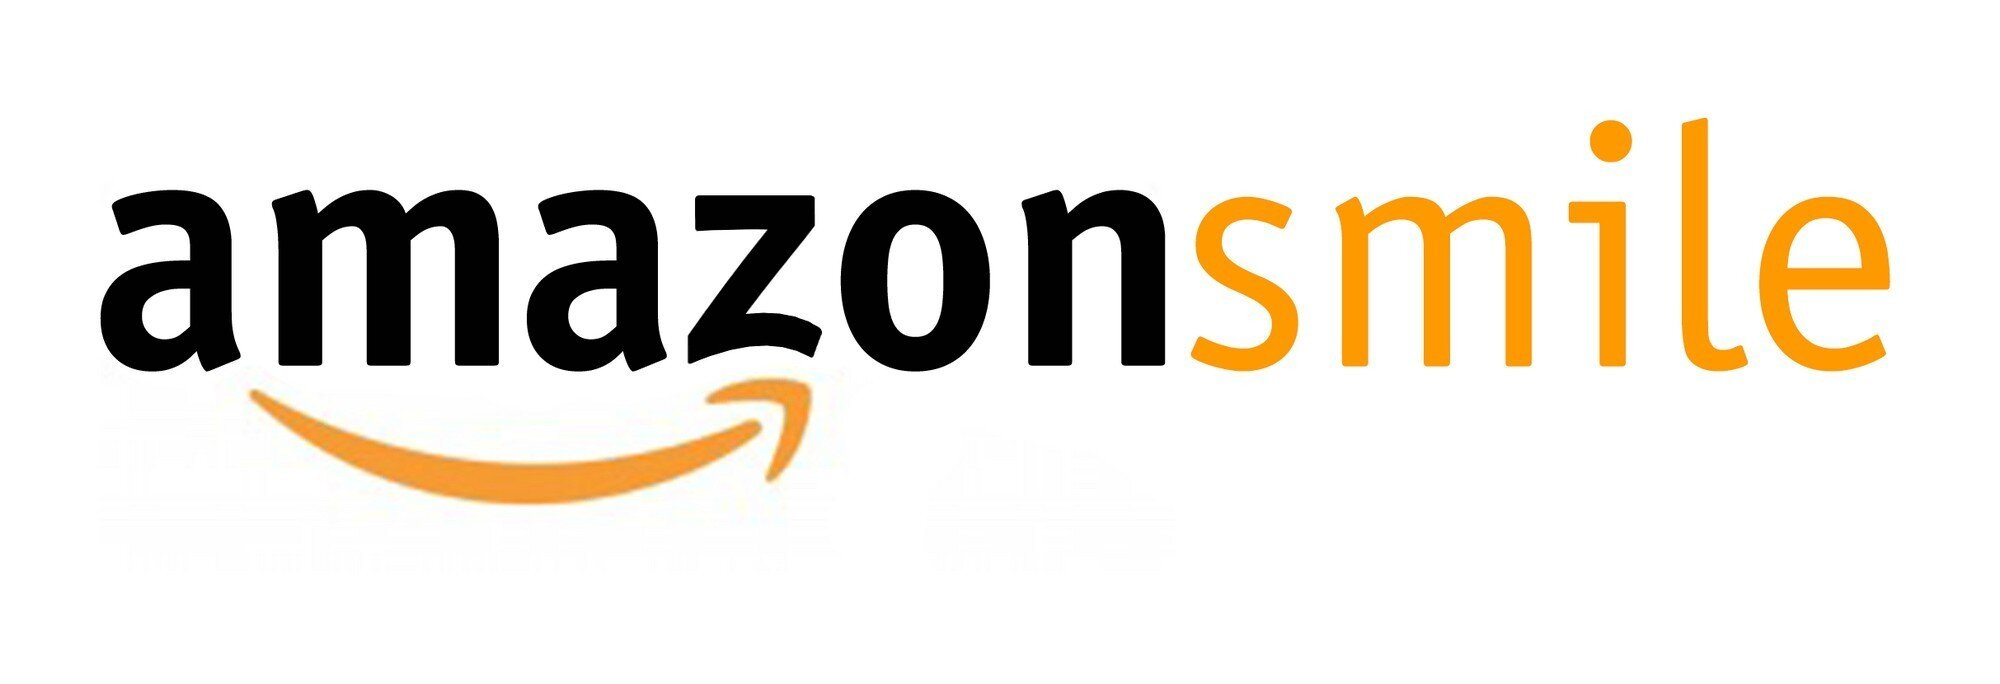 Amazon-Smile-Logo-e1457724074257.jpg